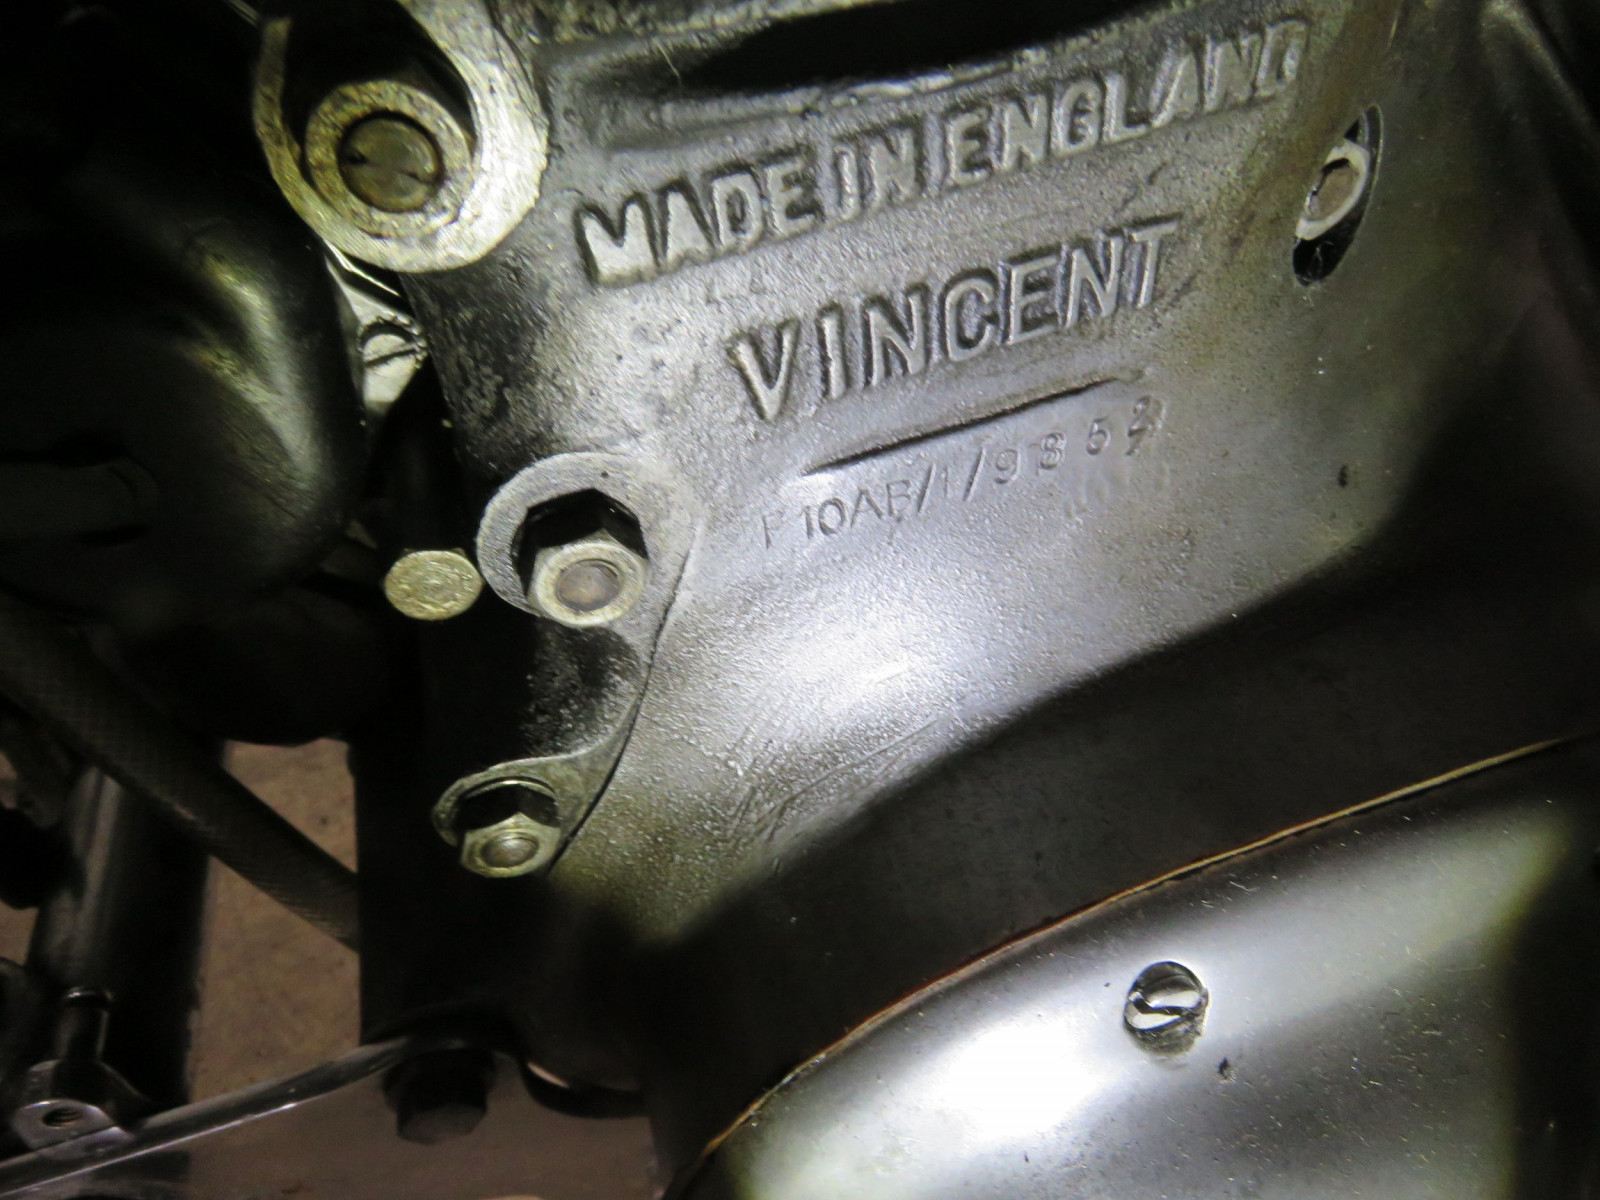 1952 Rare Vincent Motorcycle - Image 12